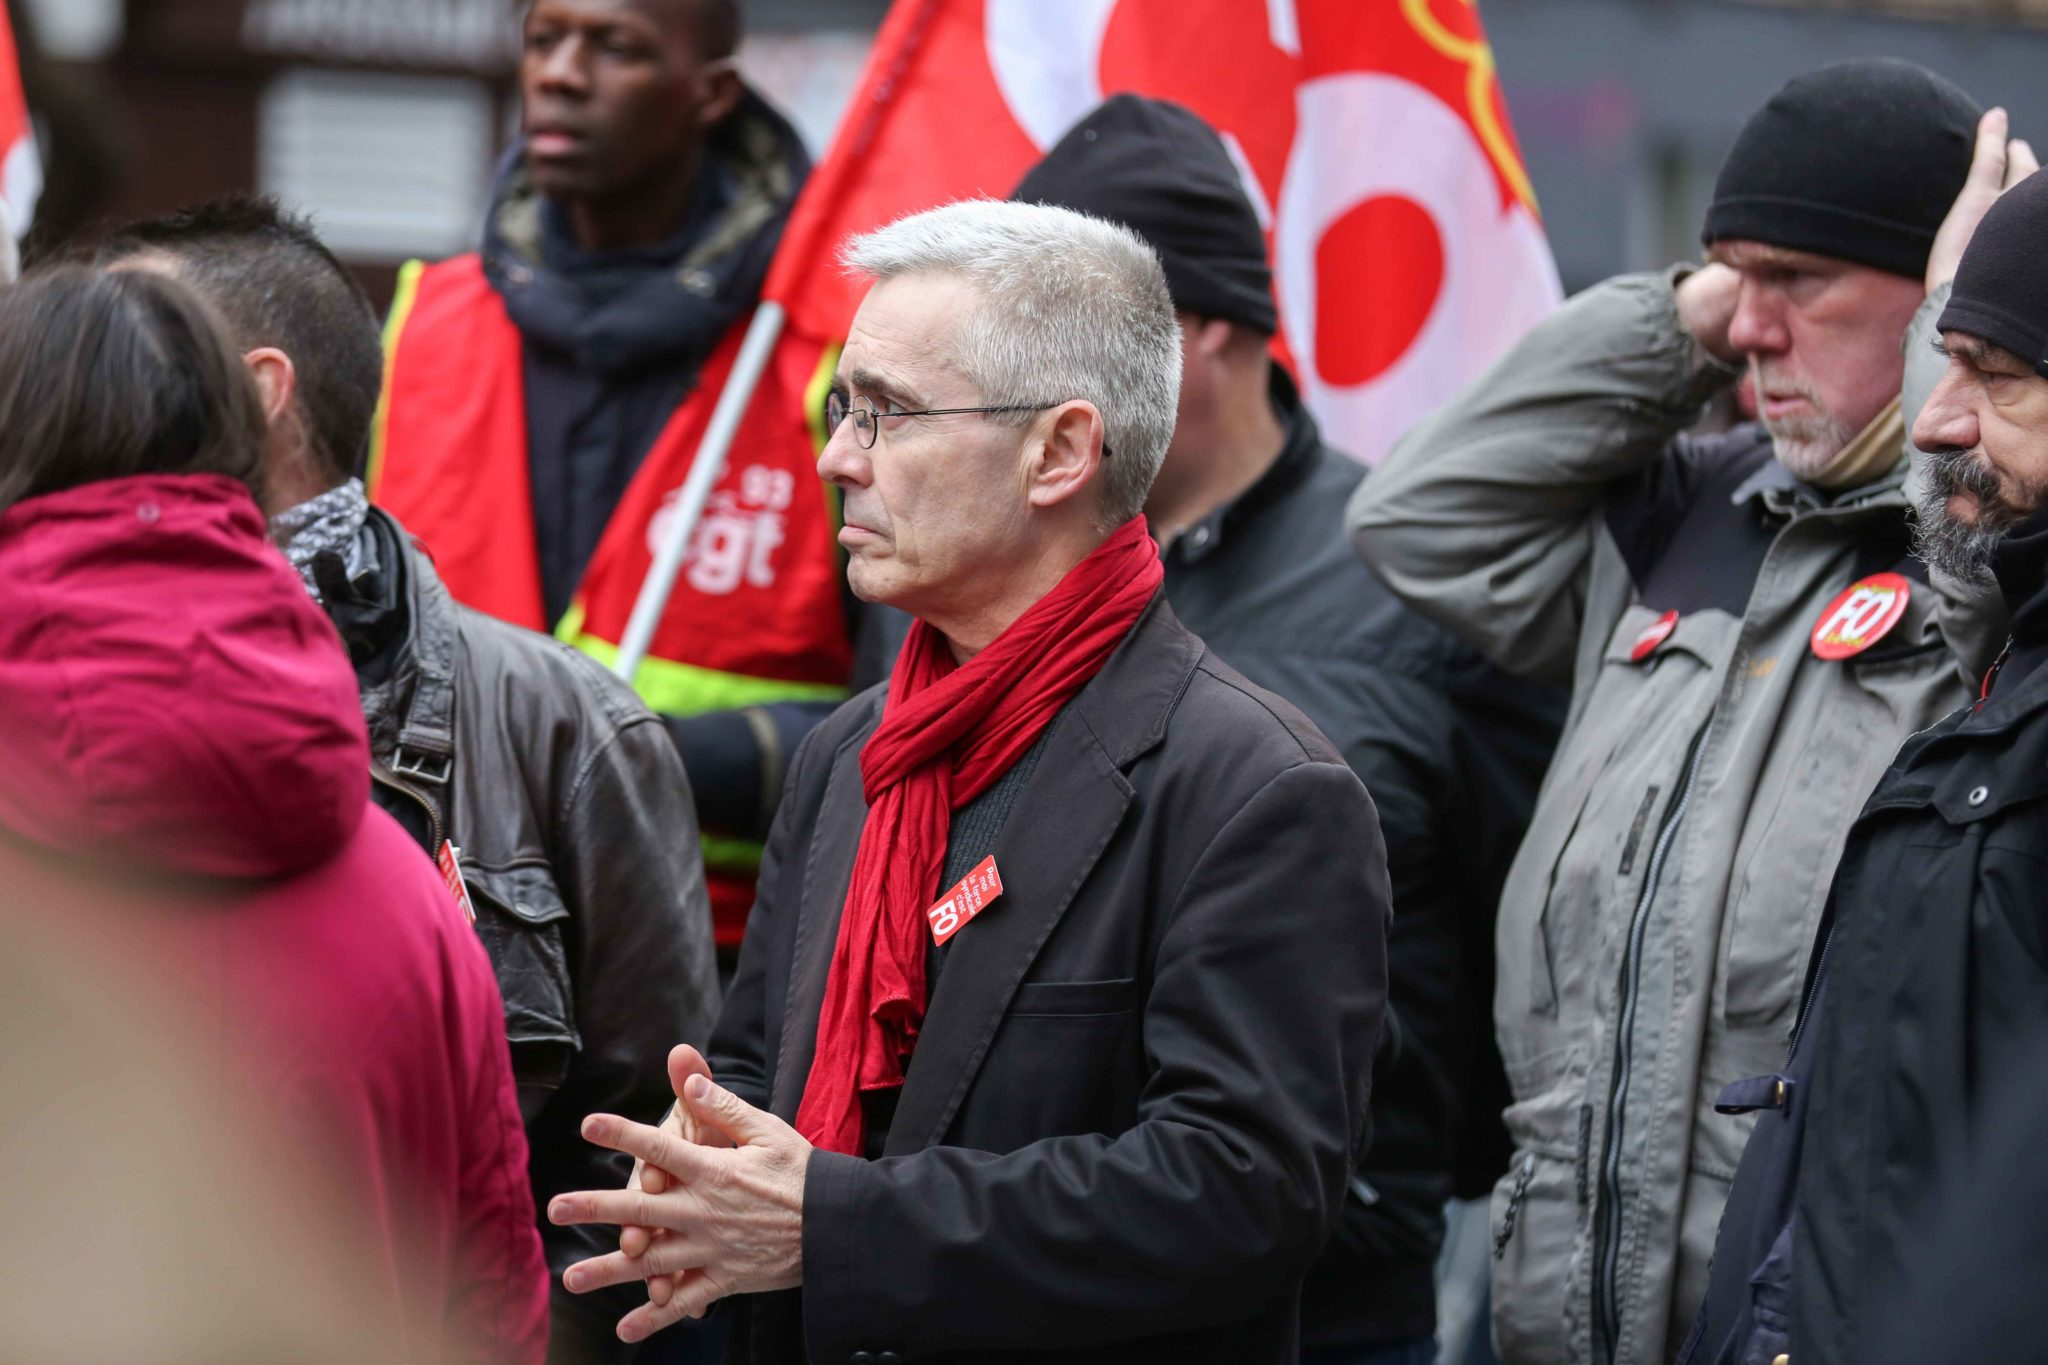 General secretary of French Union Force Ouvriere (FO) Yves Veyrier (C) takes part in a demonstration in Paris, on January 9, 2020, on the 36th day of a nationwide multi-sector strike against French government's pensions overhaul.